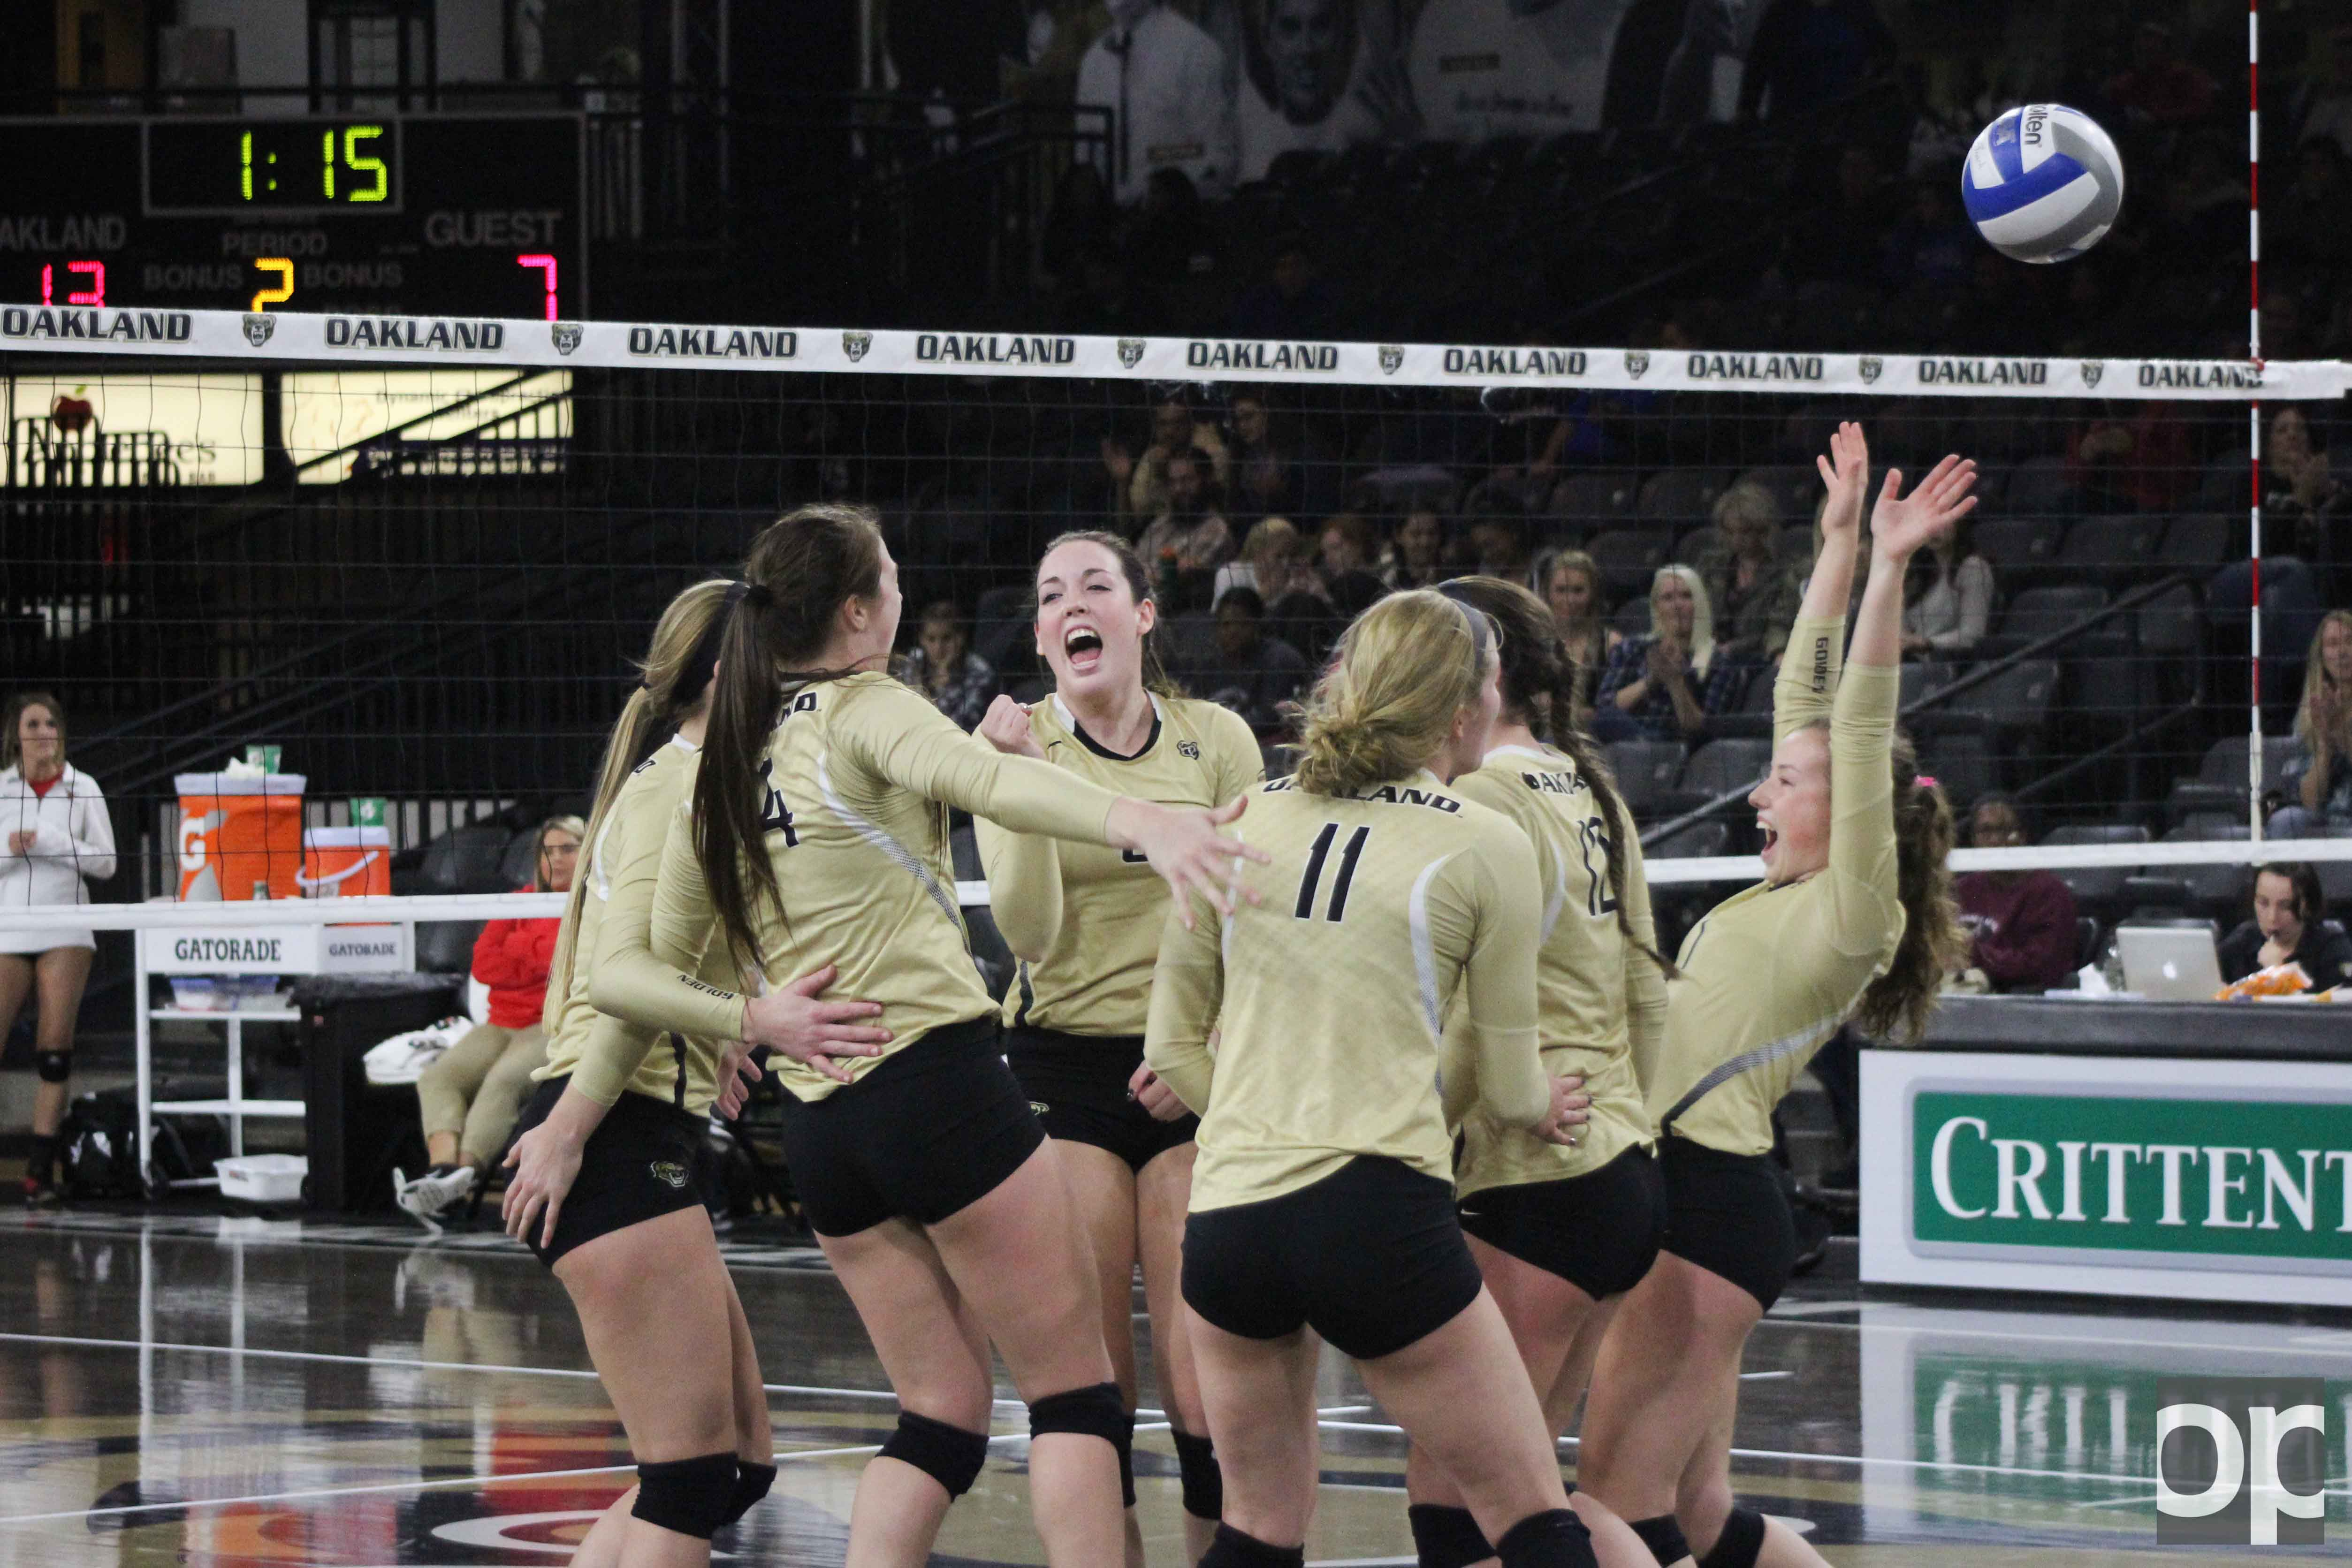 The Golden Grizzlies ended their six game winning streak with a loss to the Milwaukee Panthers.